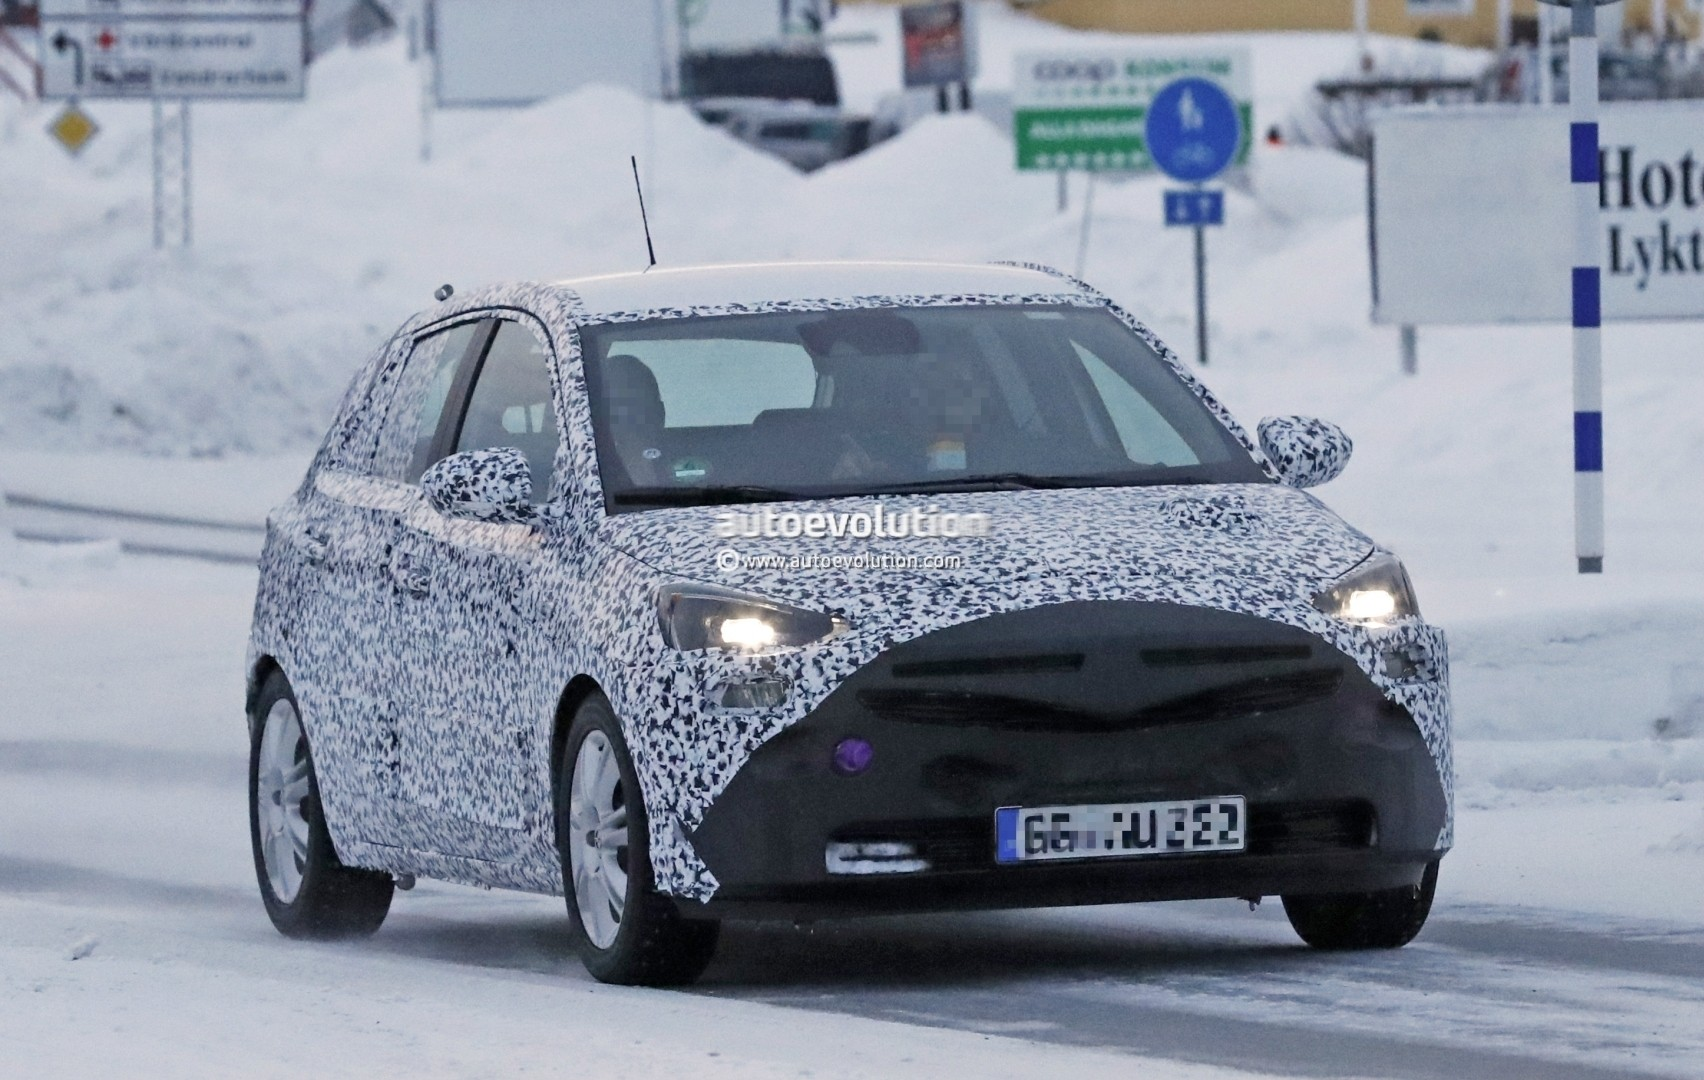 Volkswagen Group Latest Models >> New 2019 Opel Corsa Shows Production Headlights in Latest Spyshots - autoevolution